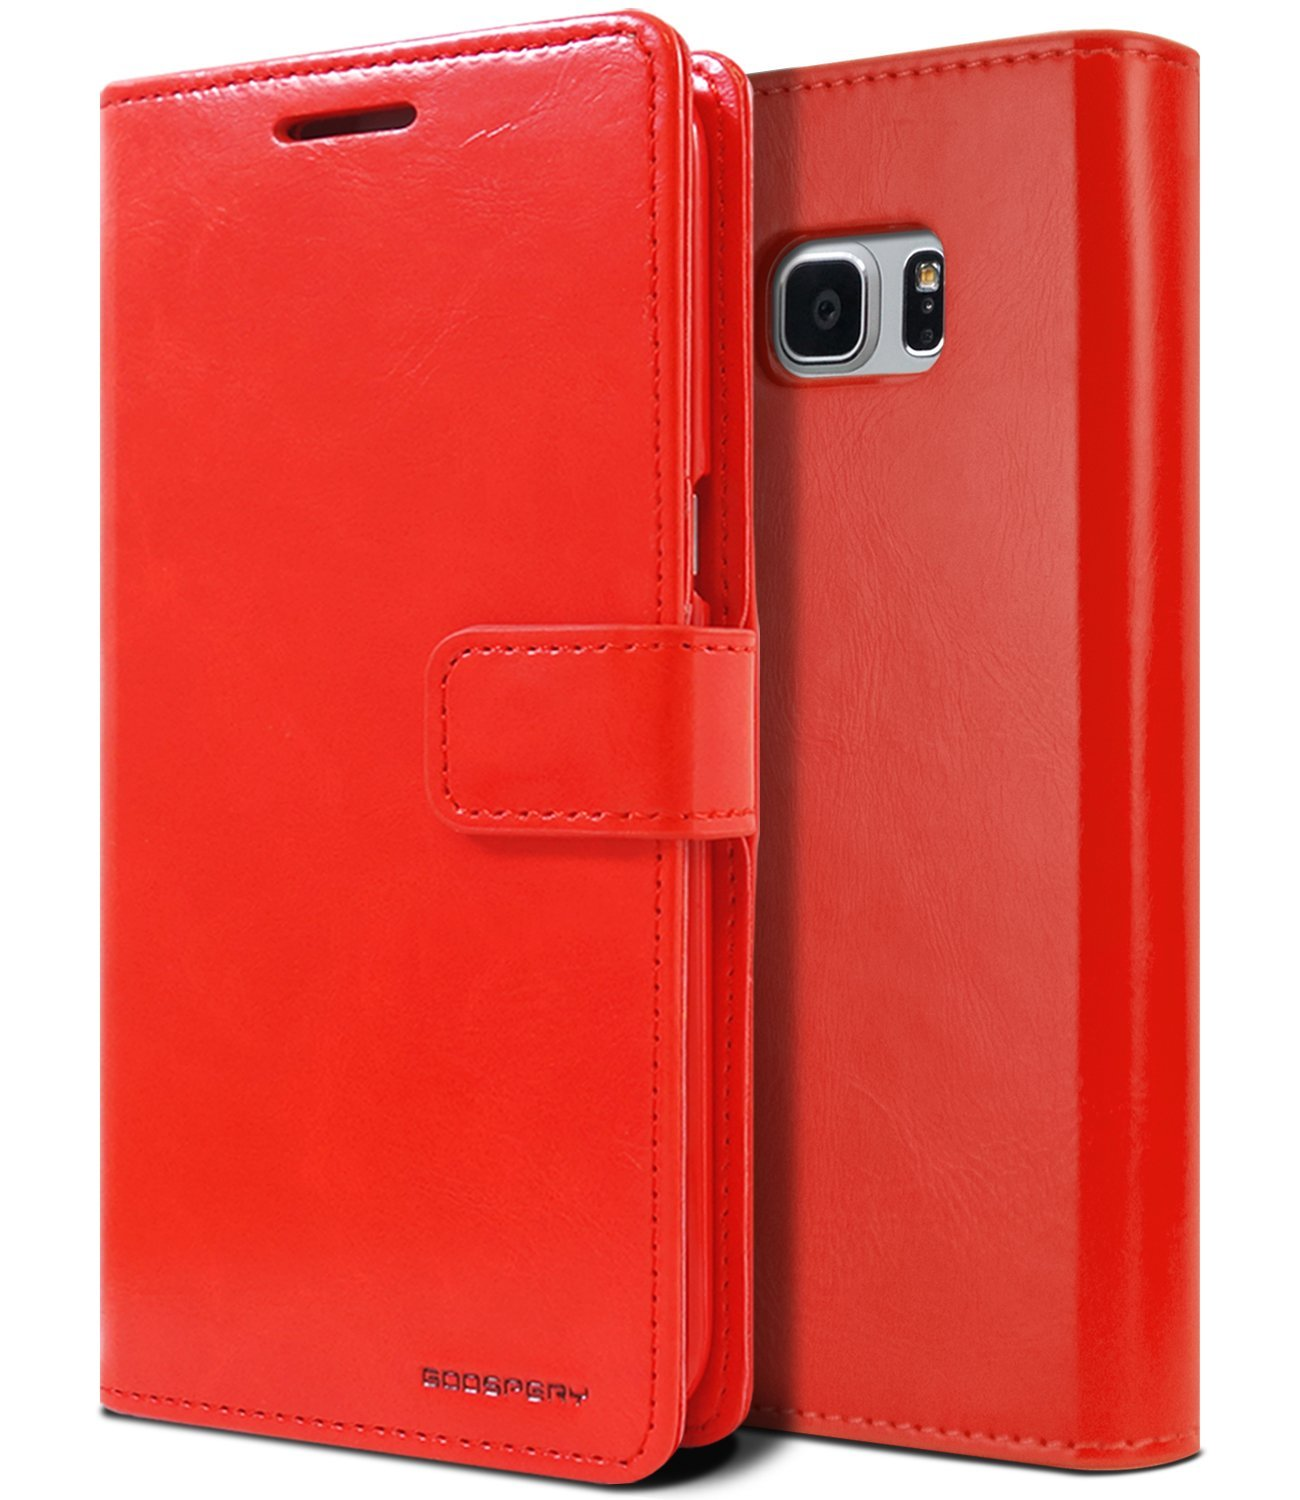 Buy 7 Led Pod Red Chrome Casing 7led Neon For Cars Goospery Samsung Note 3 Blue Moon Diary Case Galaxy Wallet Drop